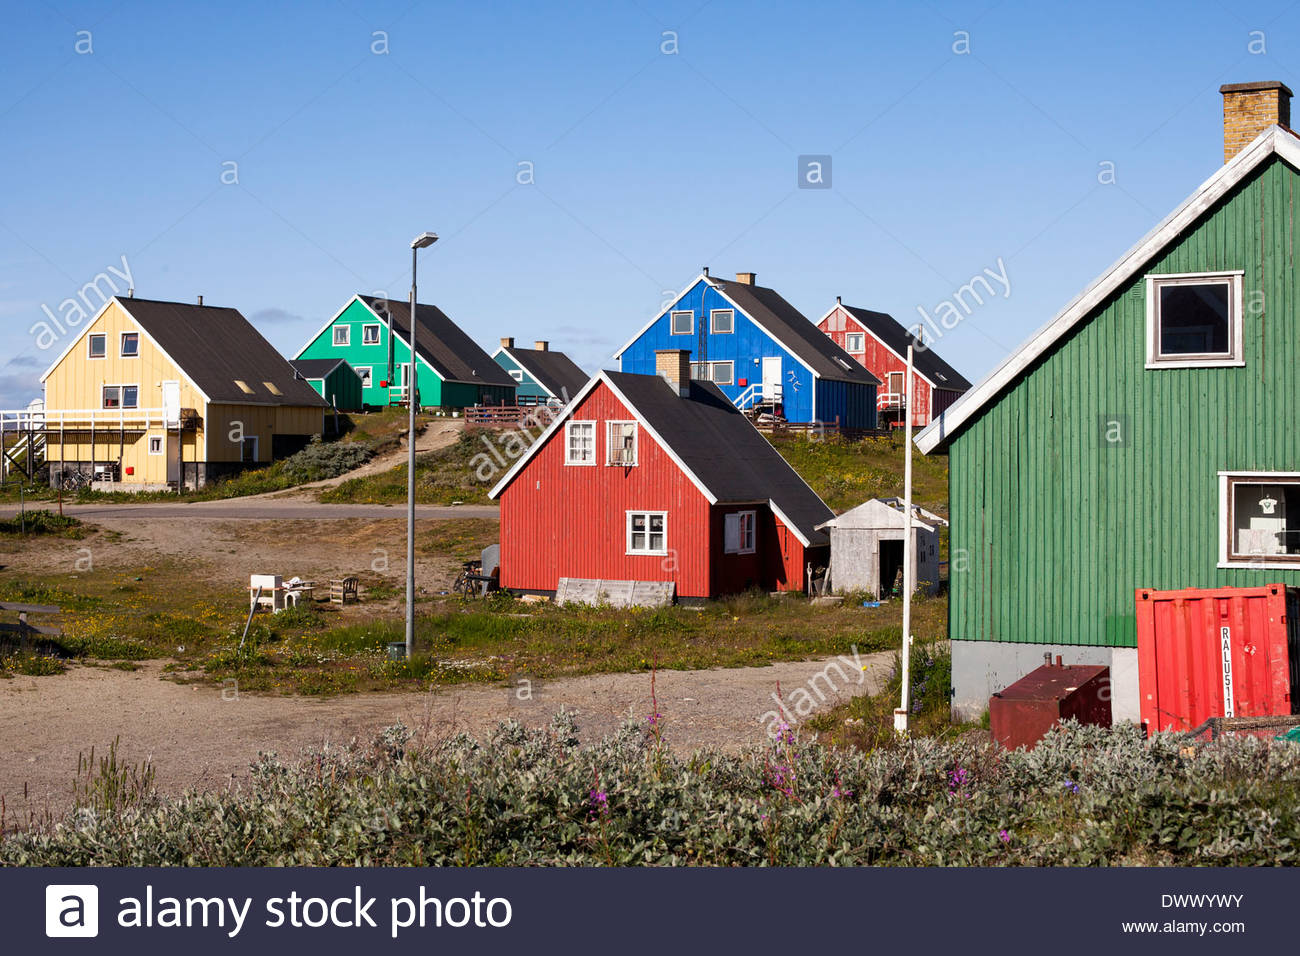 Colorful timber houses,Greenland,Europe - Stock Image